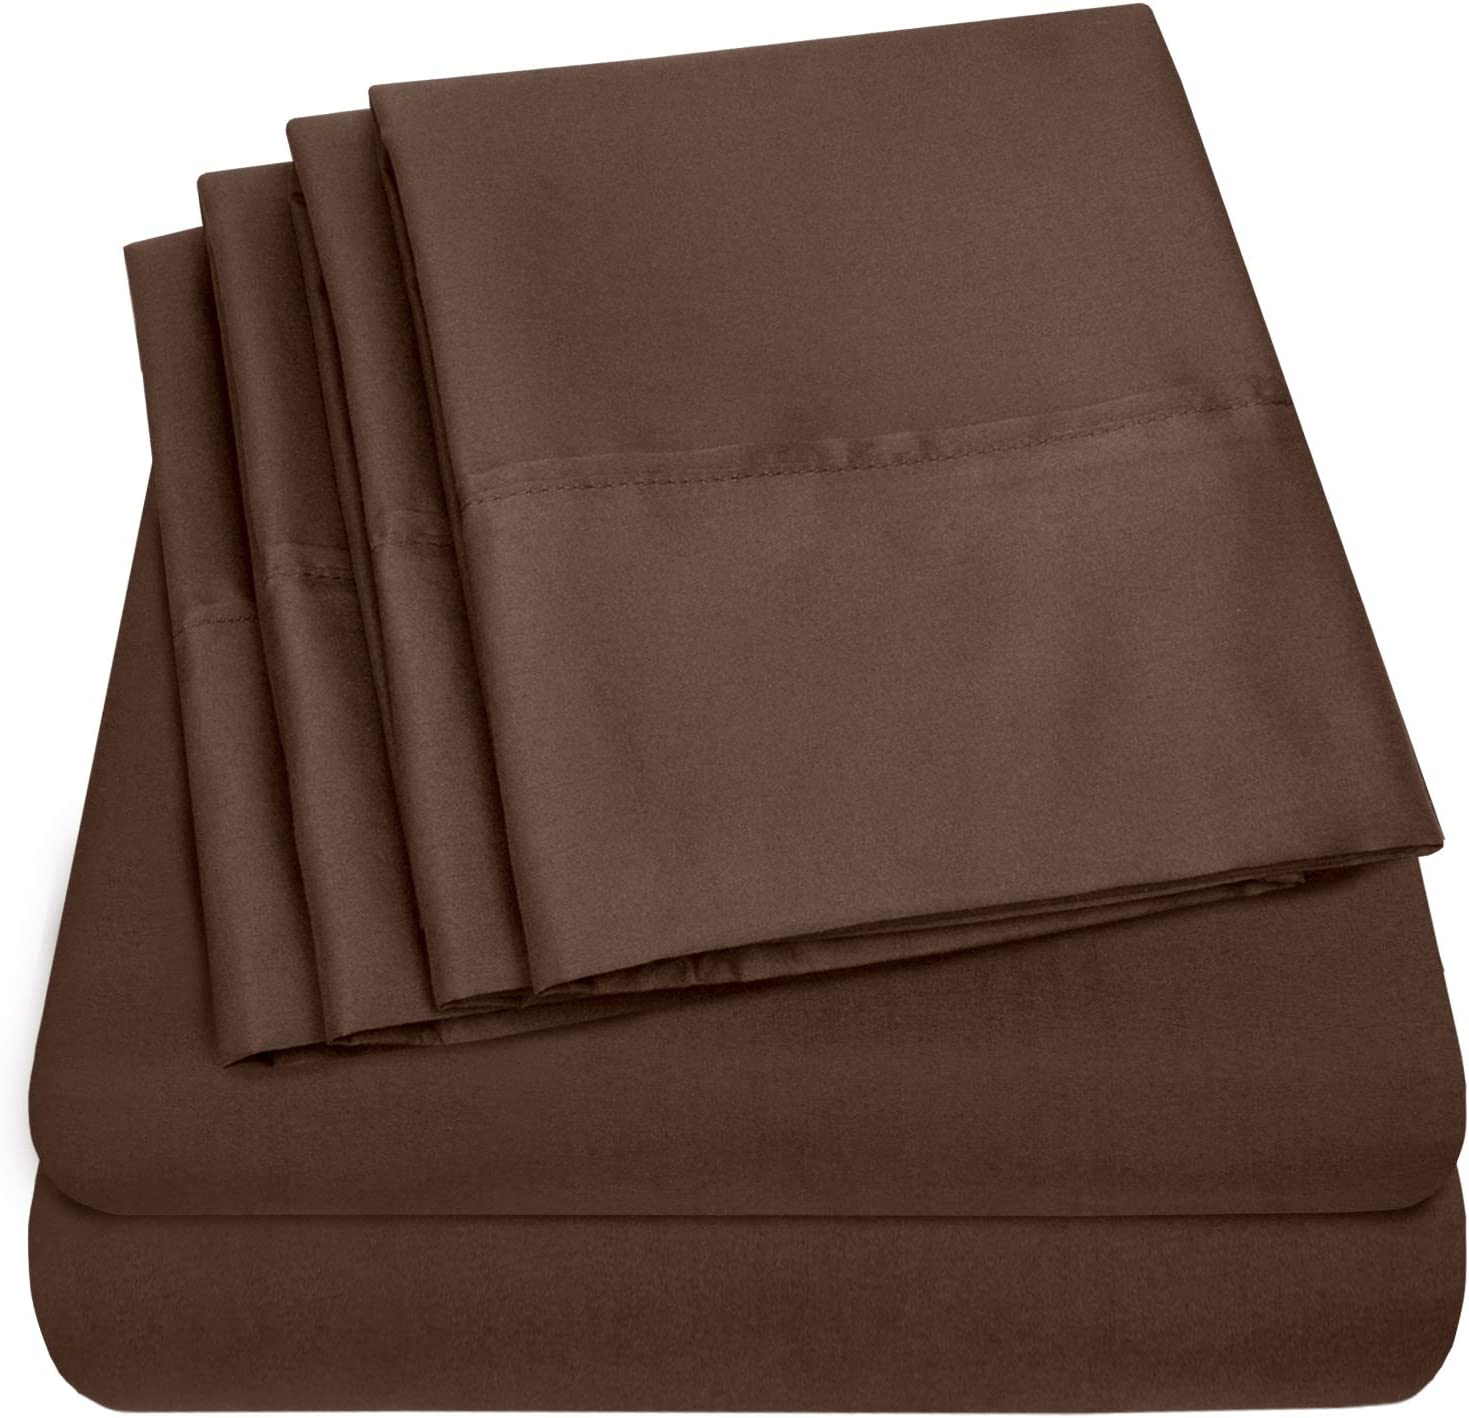 Sweet Home Collection Split King Sheets-7 Piece 1500 Thread Count Fine Brushed Microfiber Deep Pocket Set-EXTRA PILLOW CASES, VALUE, Brown